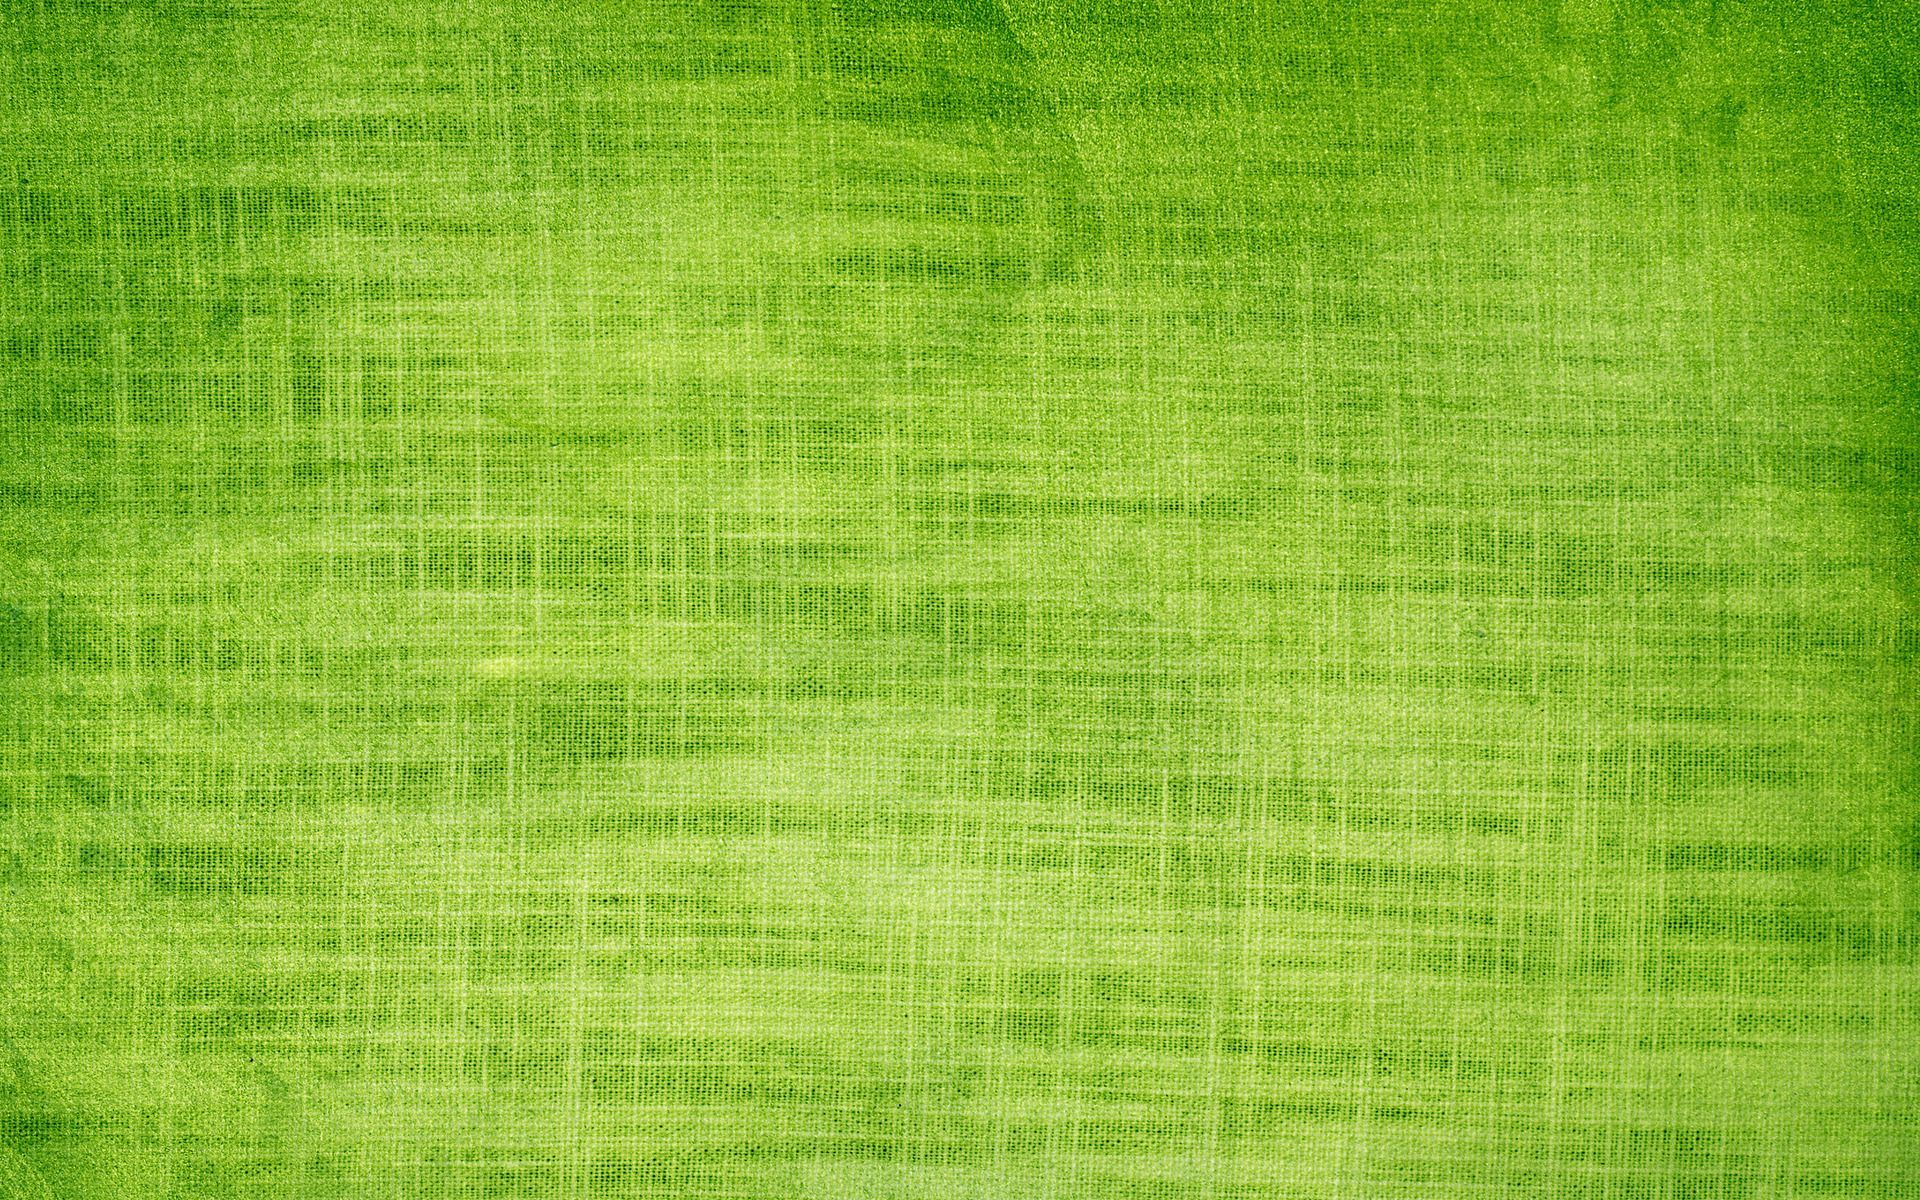 Pin By Mark On Hd Wallpapers Pinterest Wallpaper Green